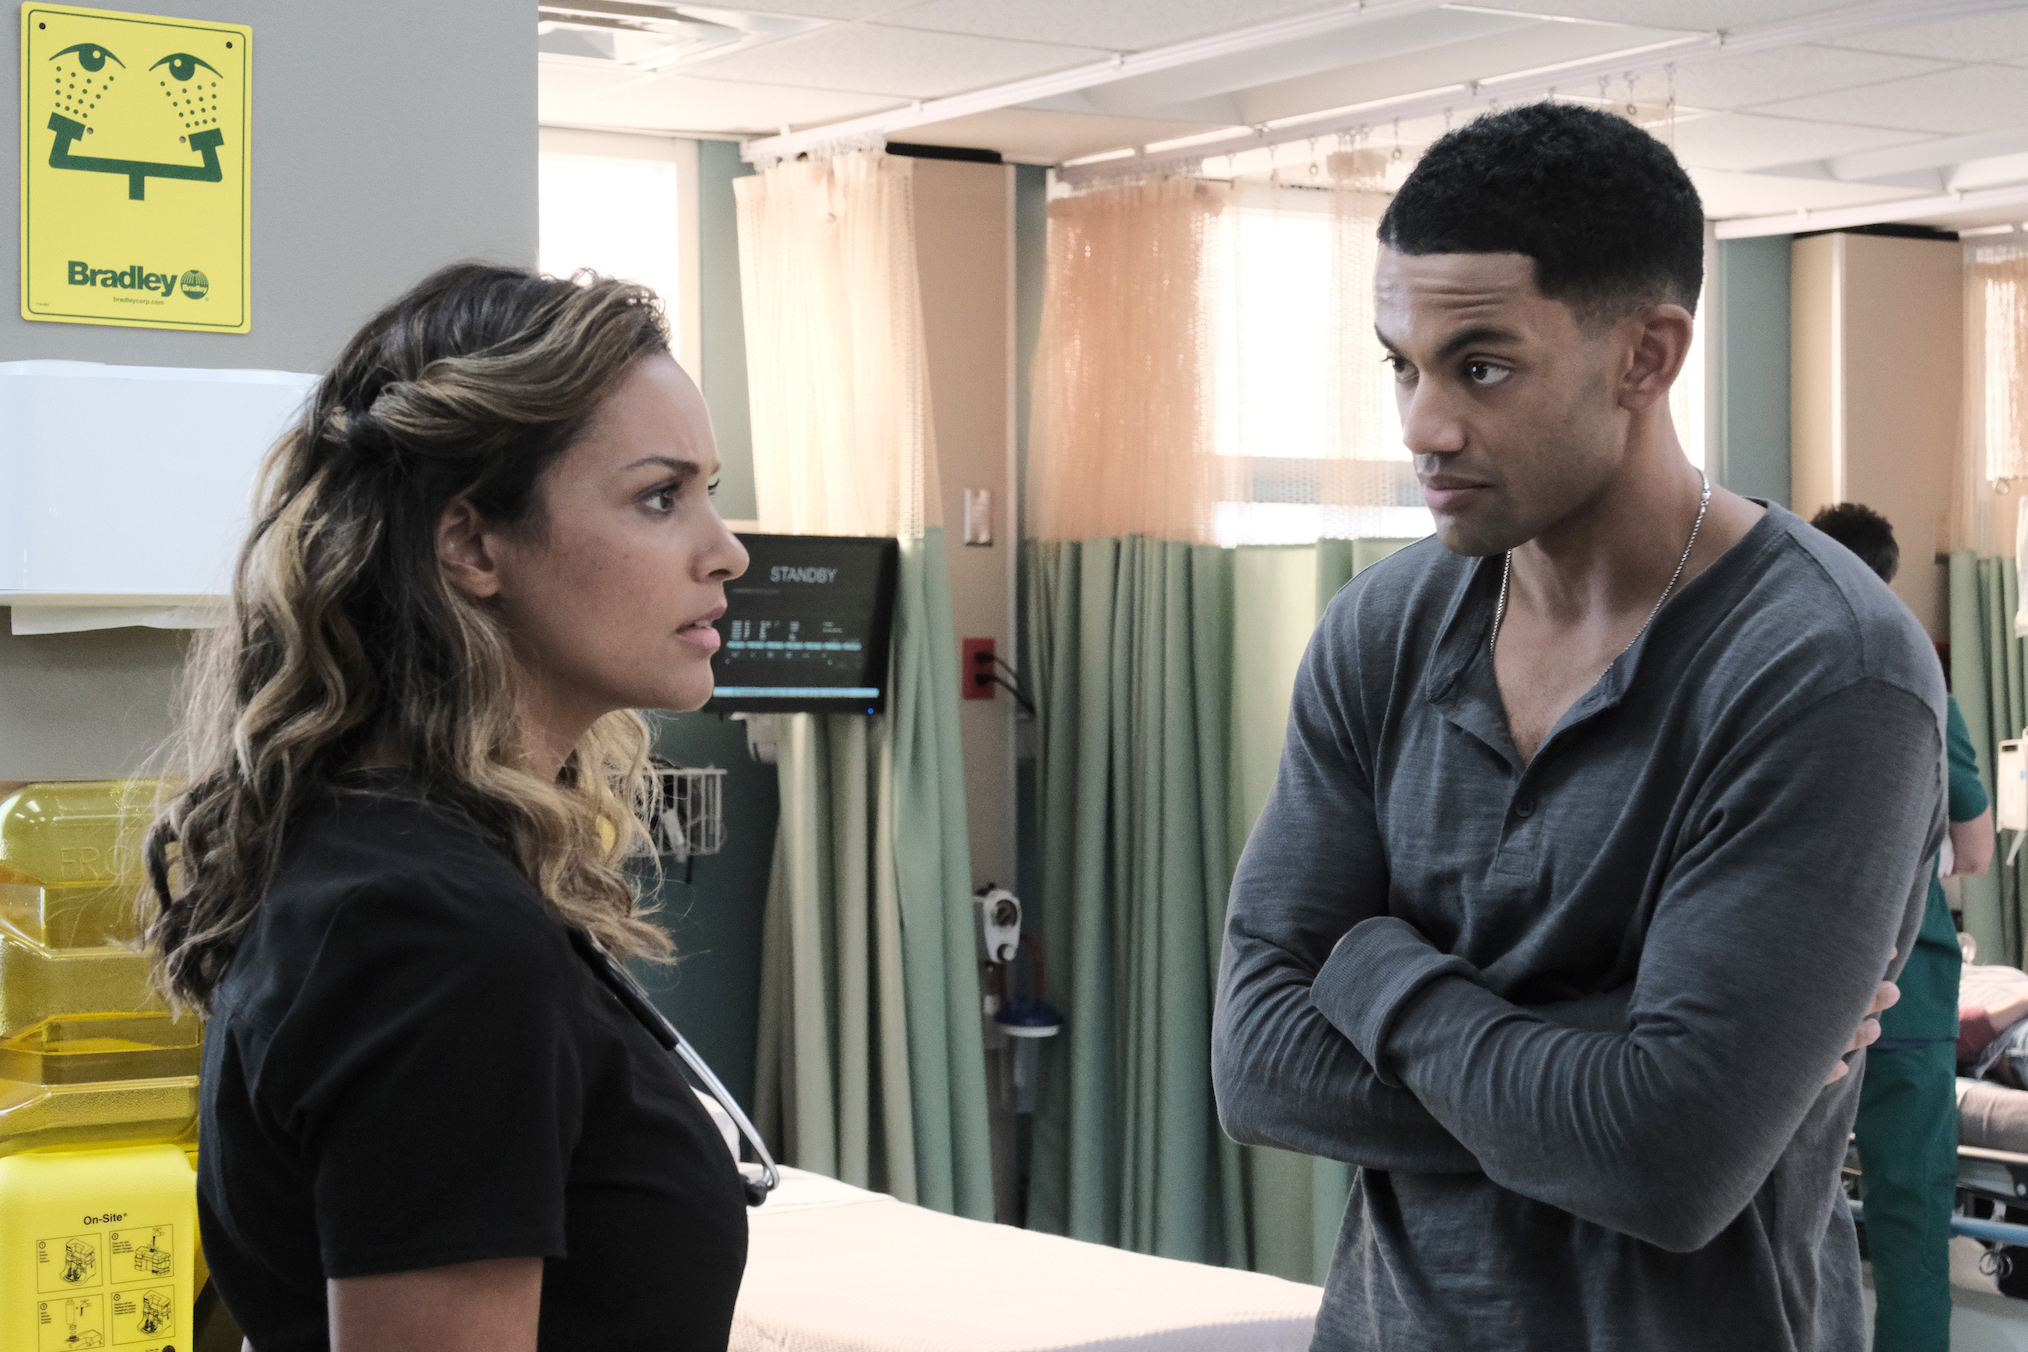 Jessica Lucas as Billie, Miles Fowler as Trevor in The Resident